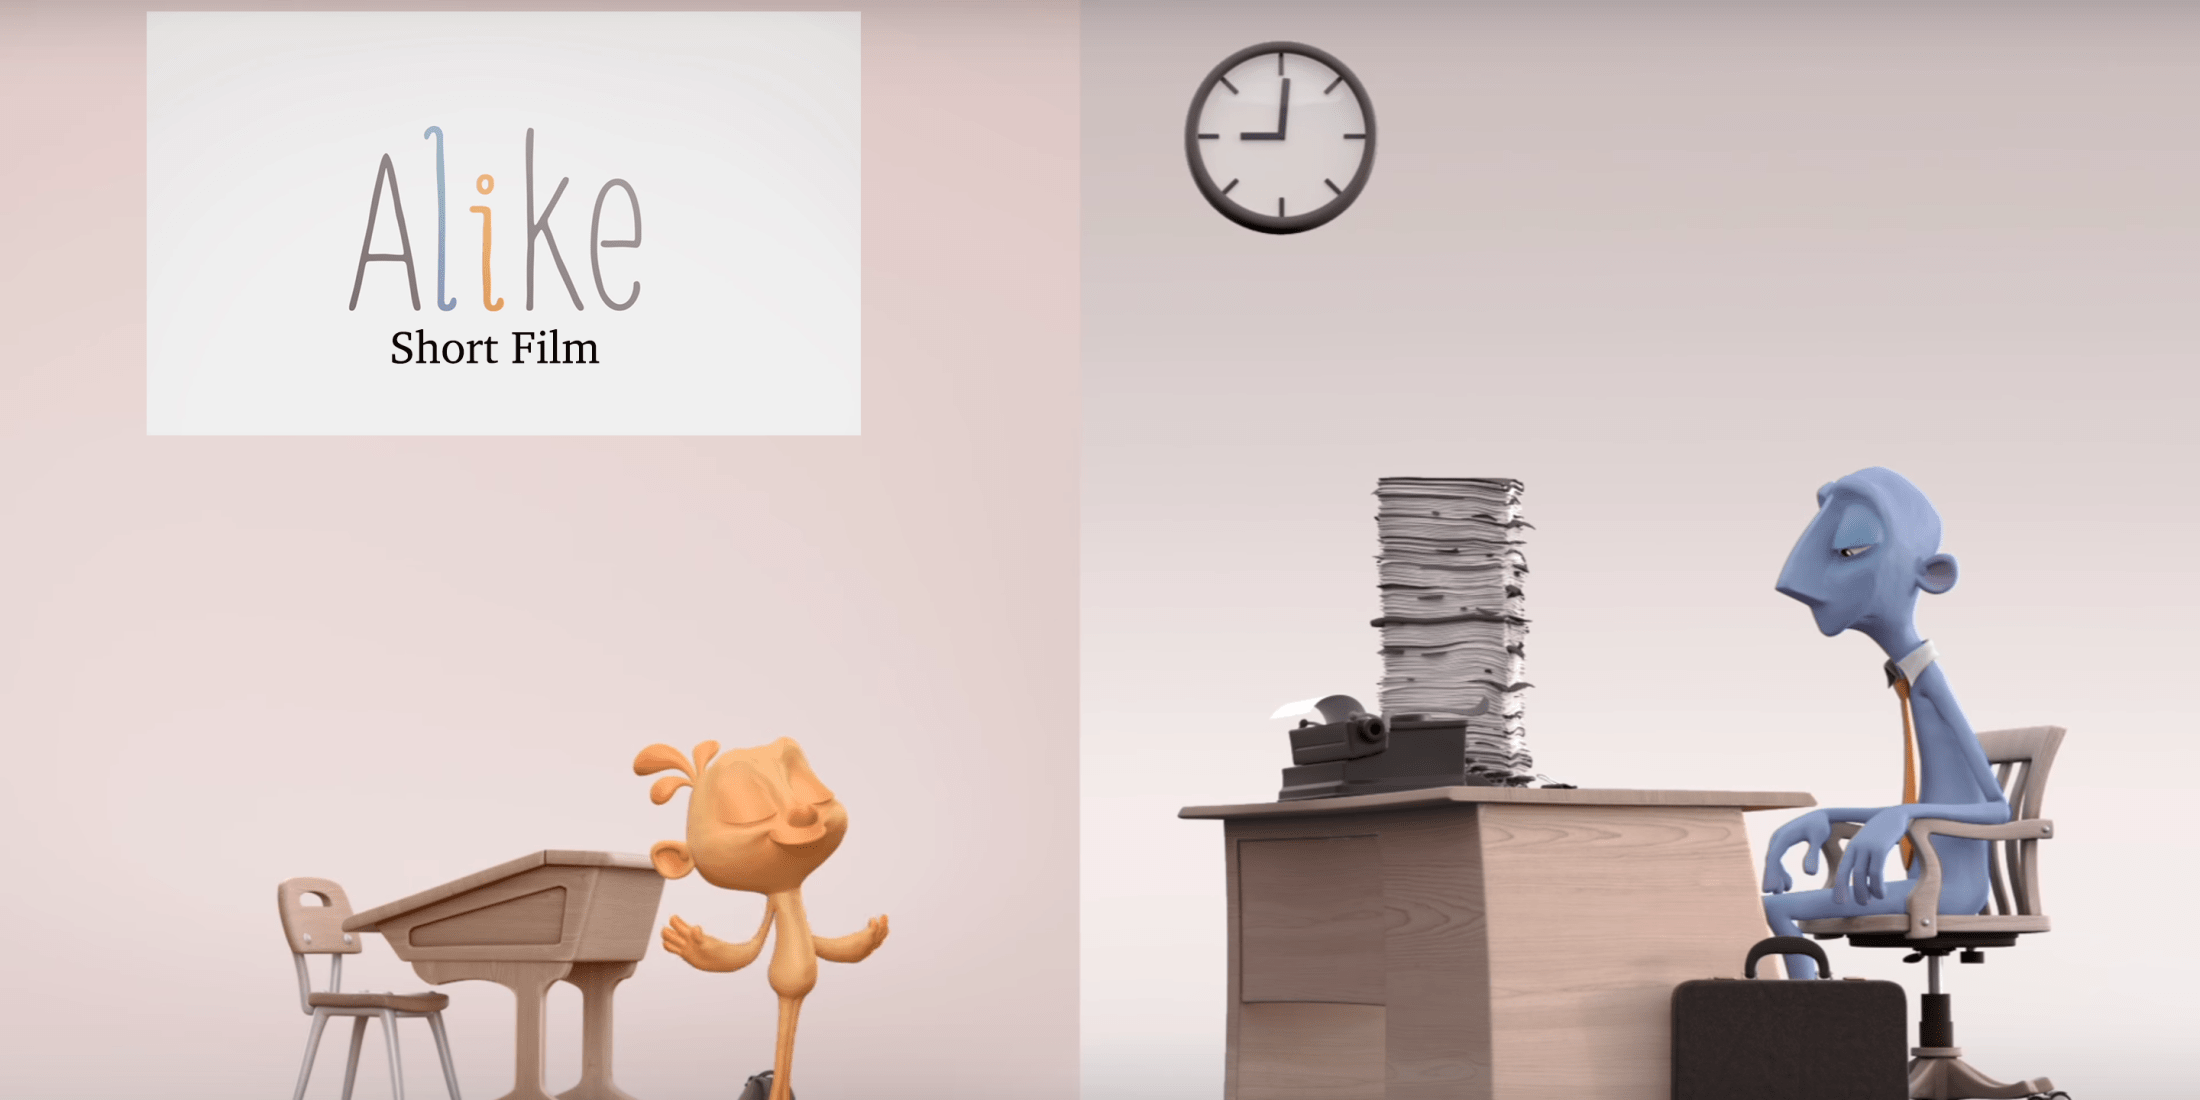 Alike short film review post image Controller Compani